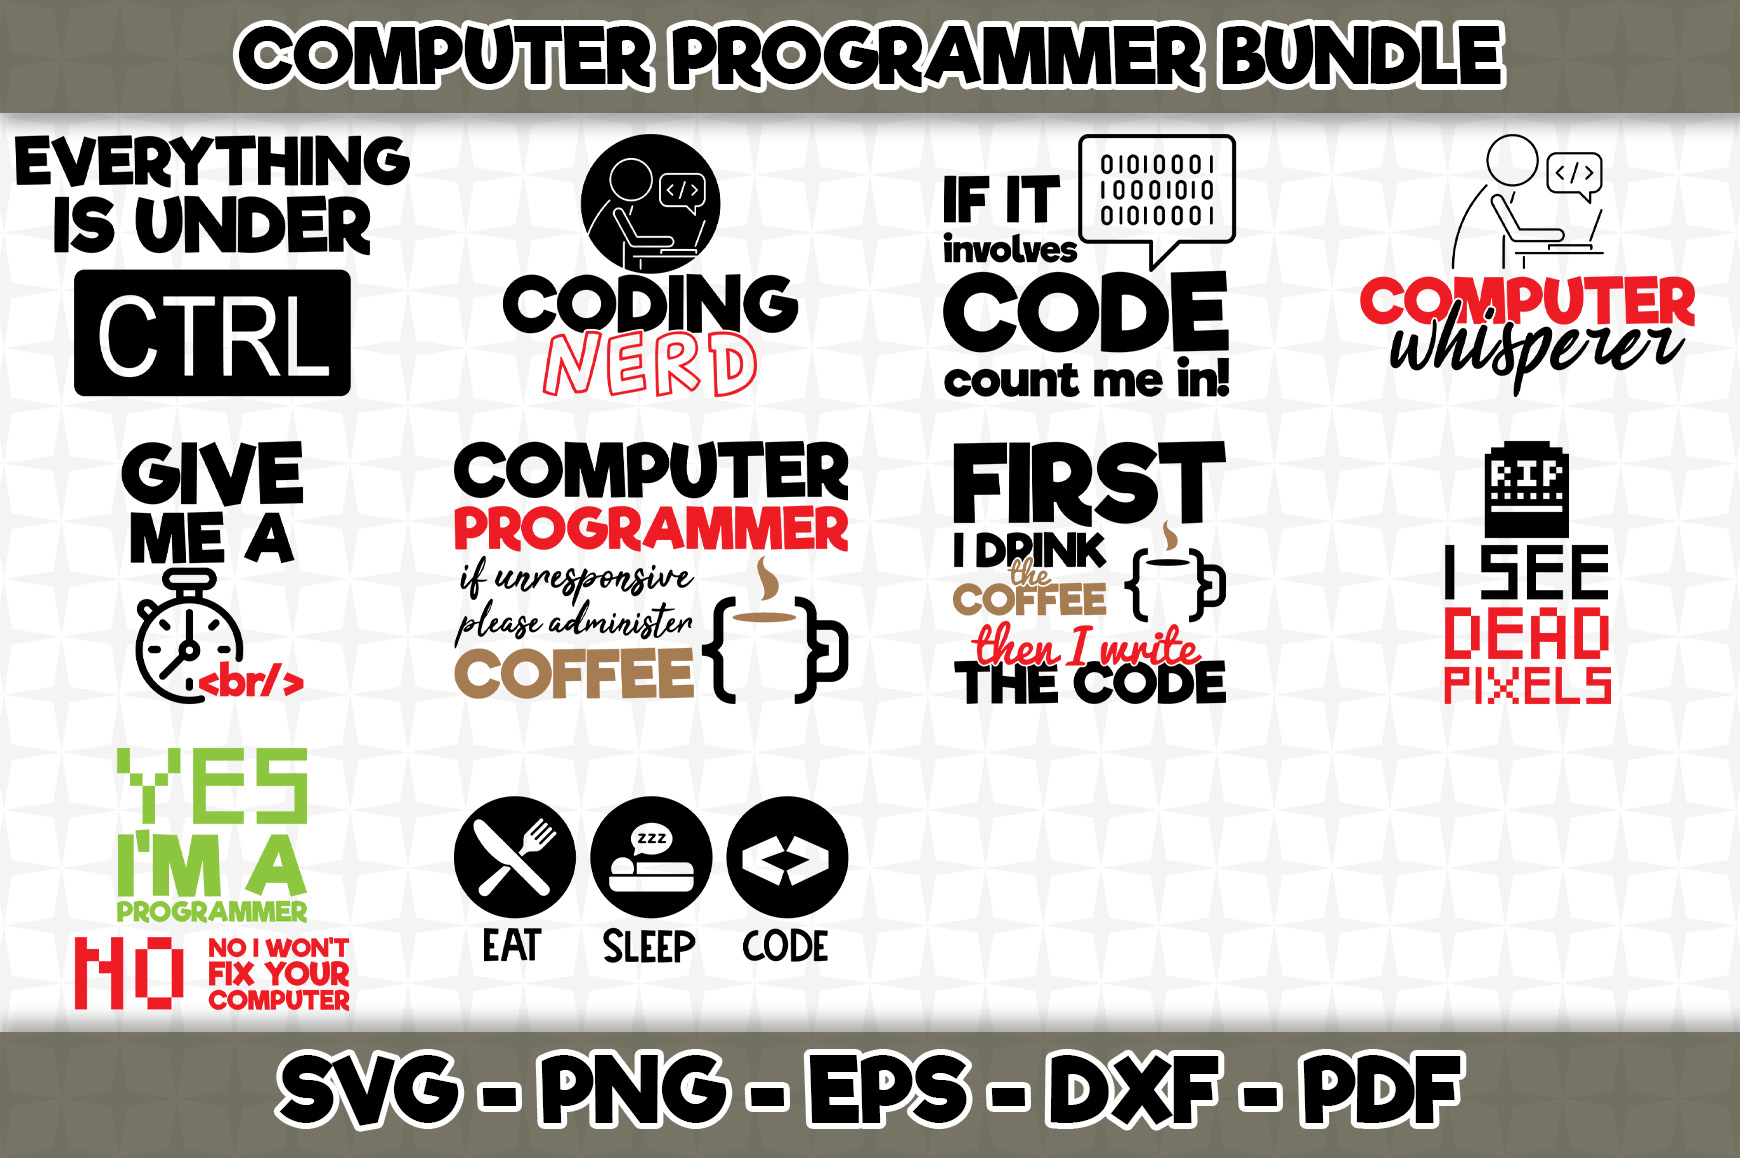 Download Free Computer Programmer Bundle 10 Designs Graphic By Svgexpress for Cricut Explore, Silhouette and other cutting machines.